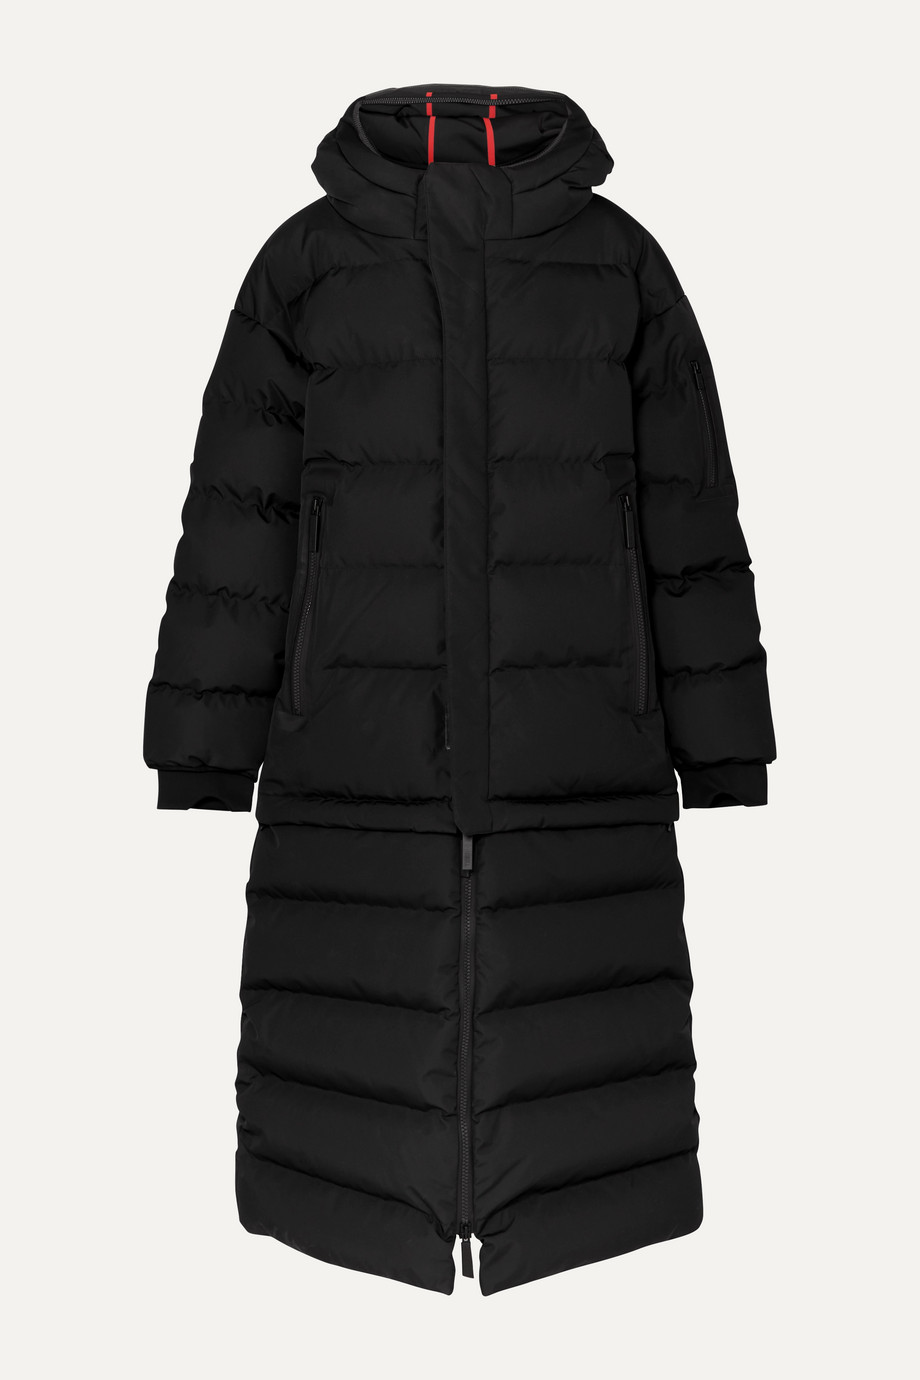 TEMPLA 3L Mor oversized convertible hooded quilted shell down coat